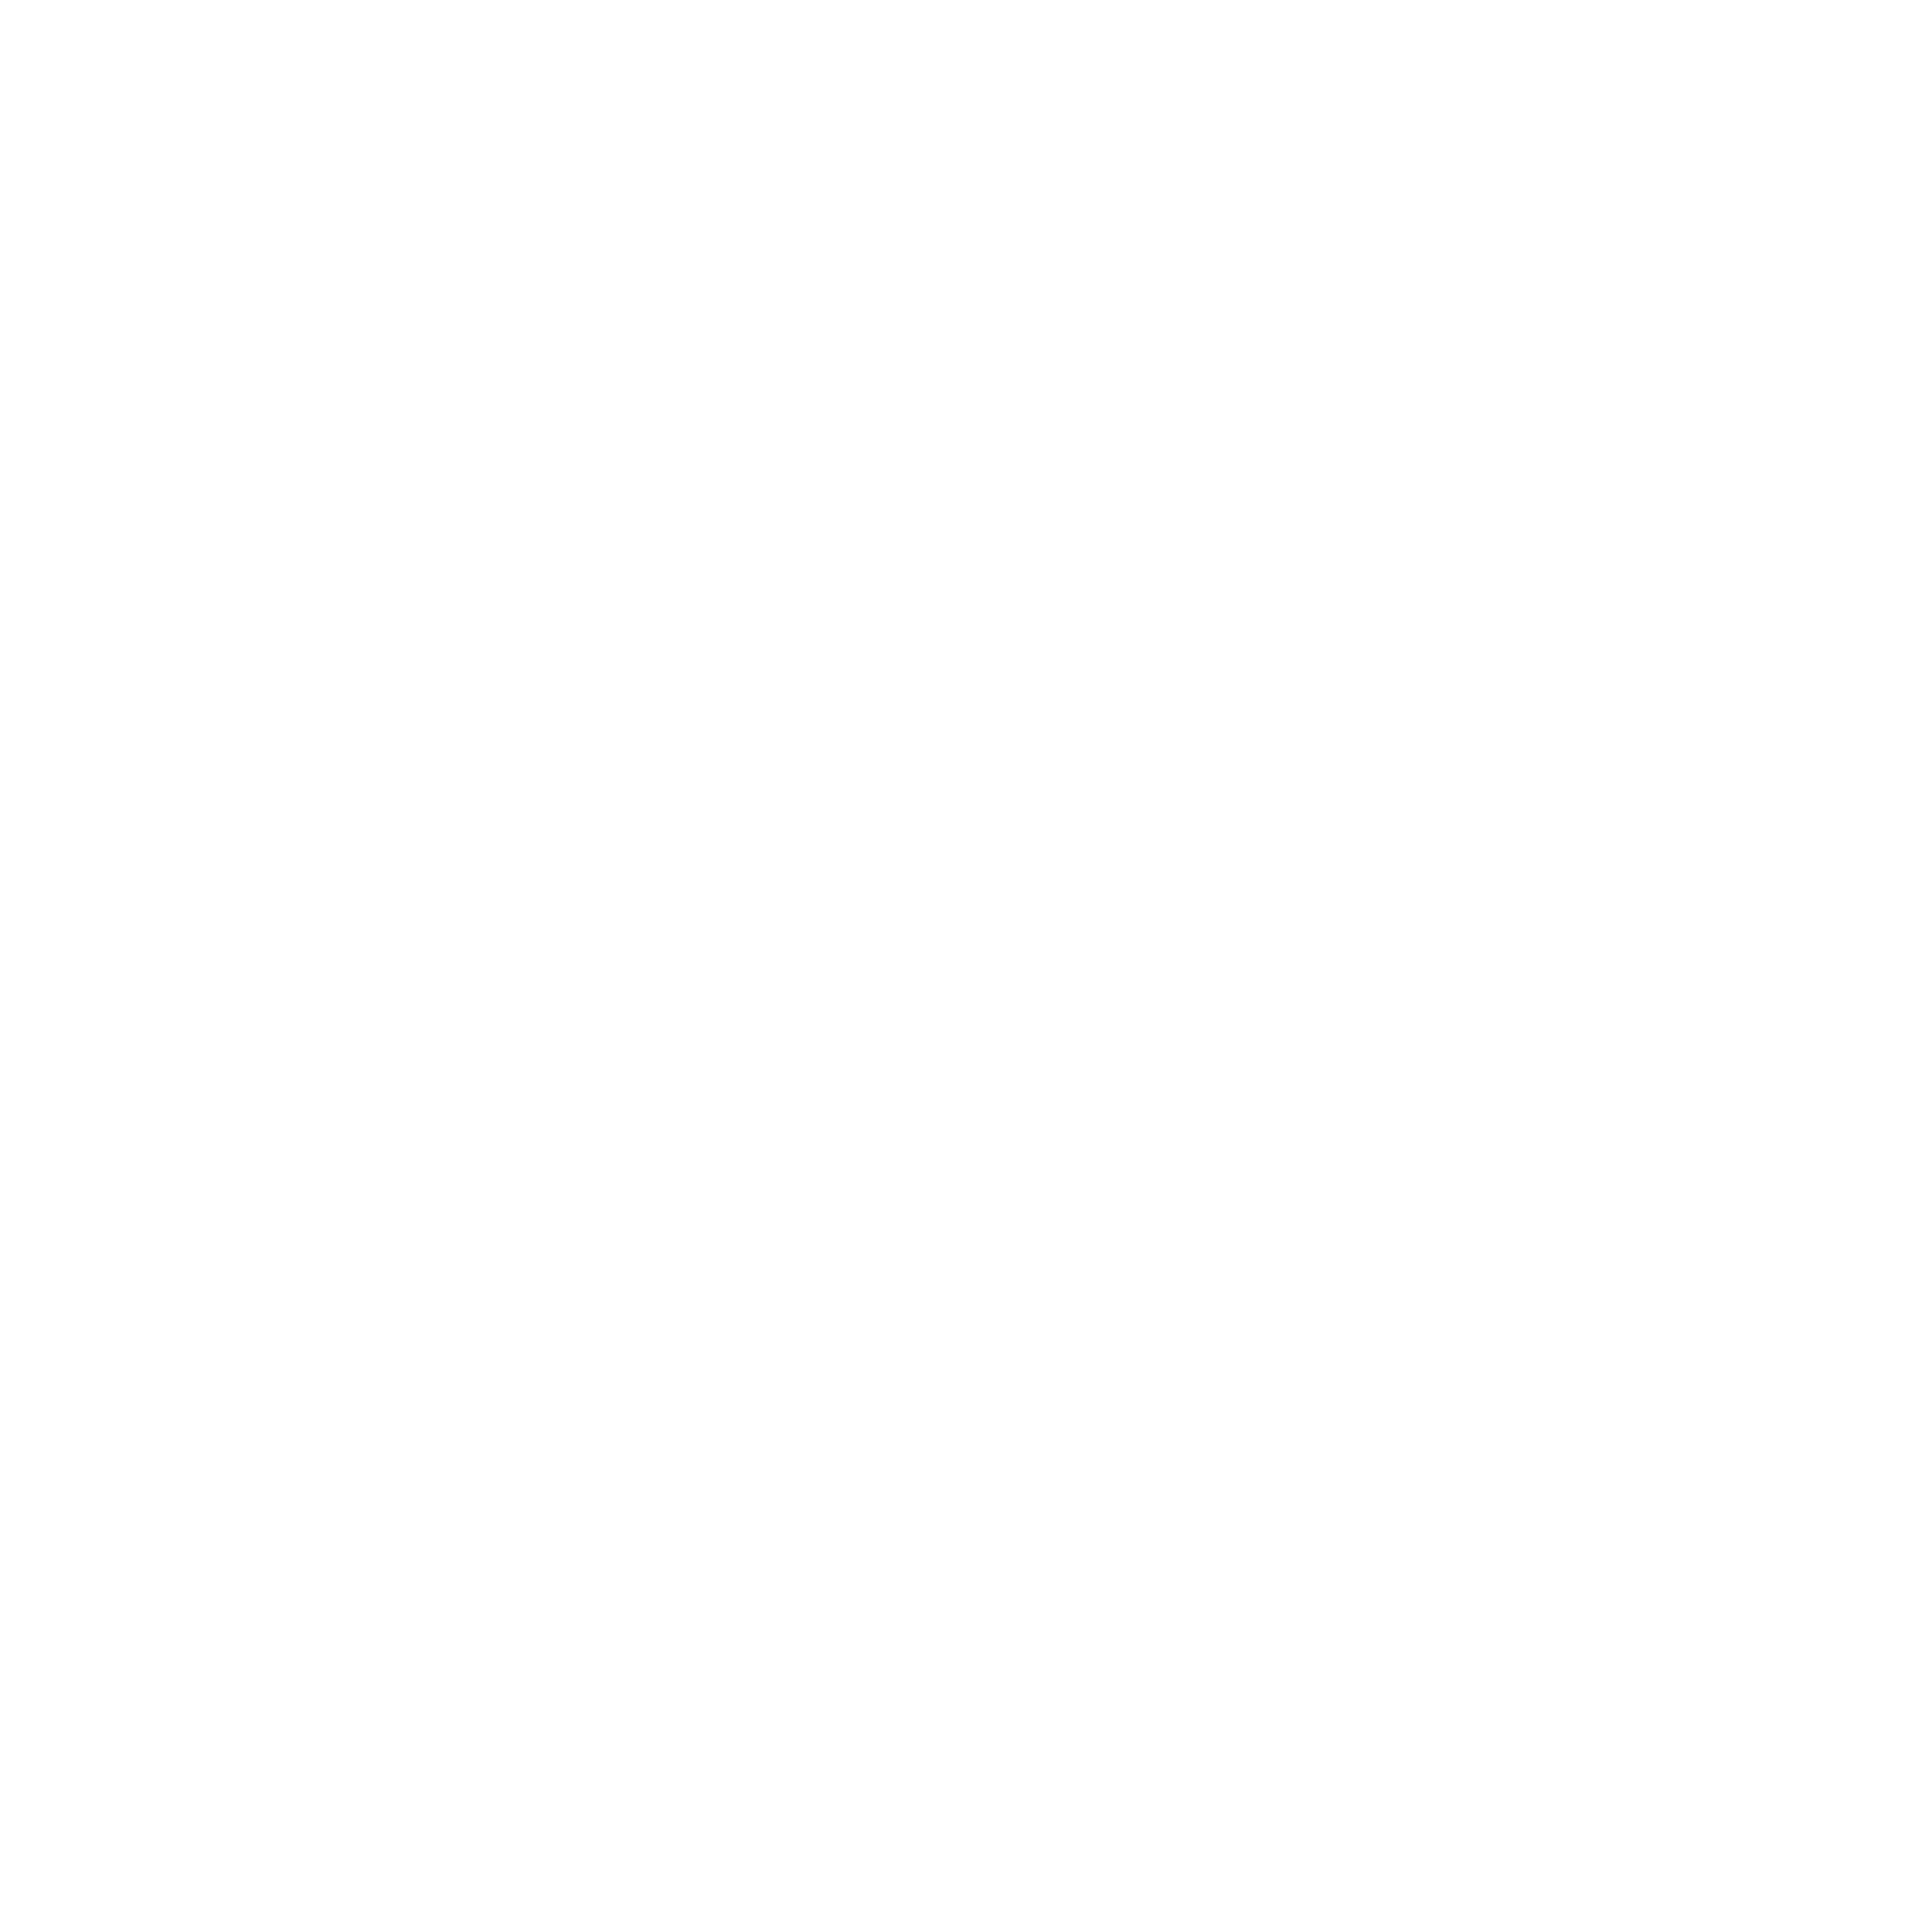 north-lanarkshire-council-logo